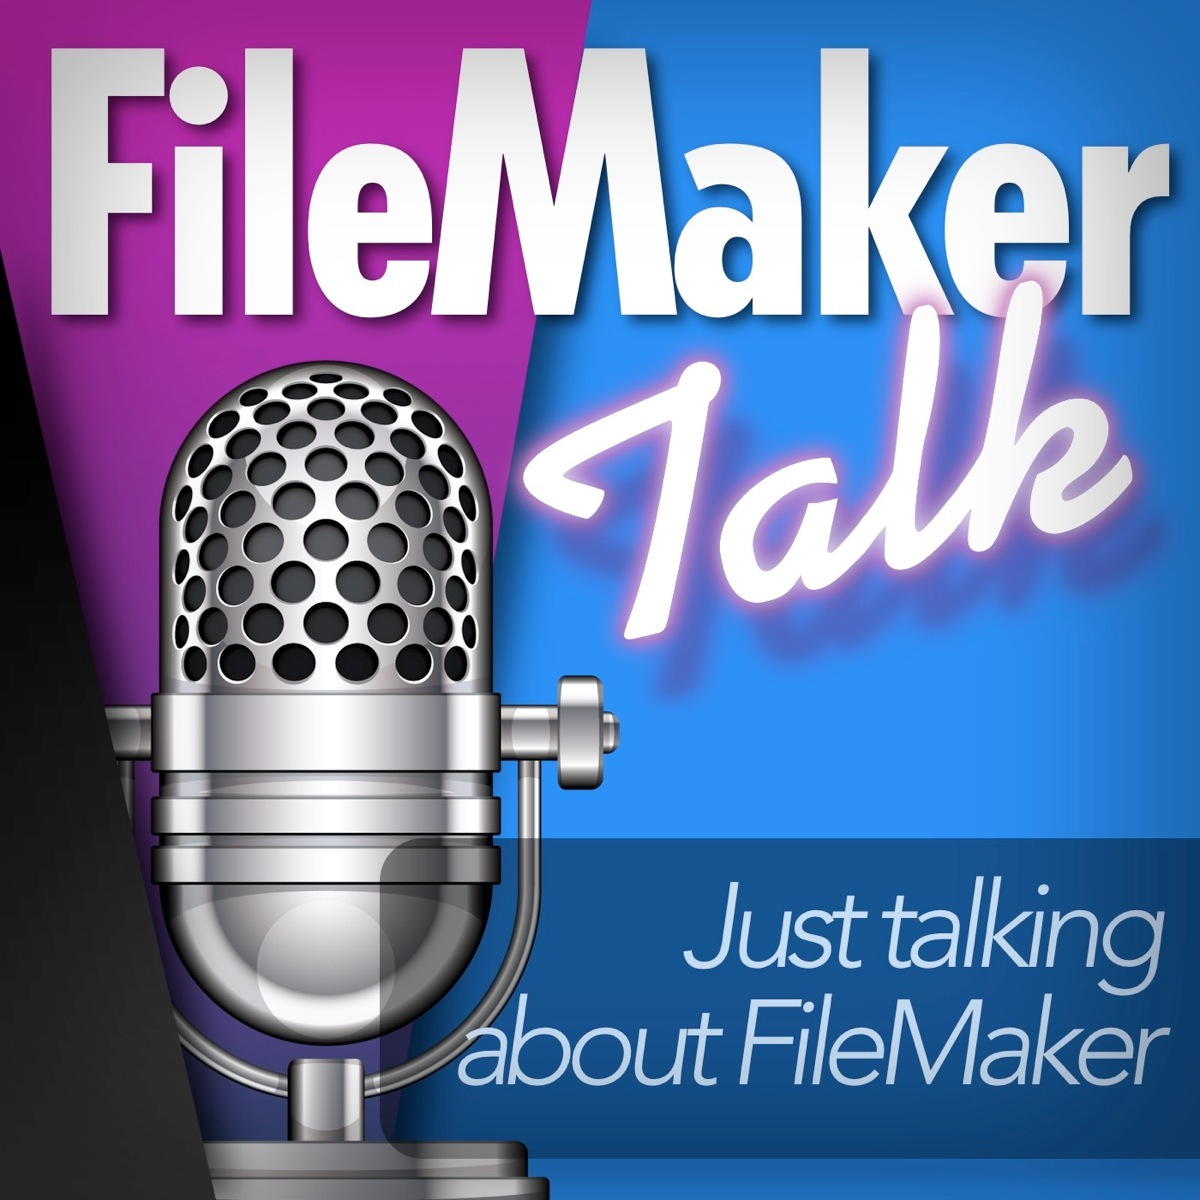 FileMaker Talk - Just talking about FileMaker